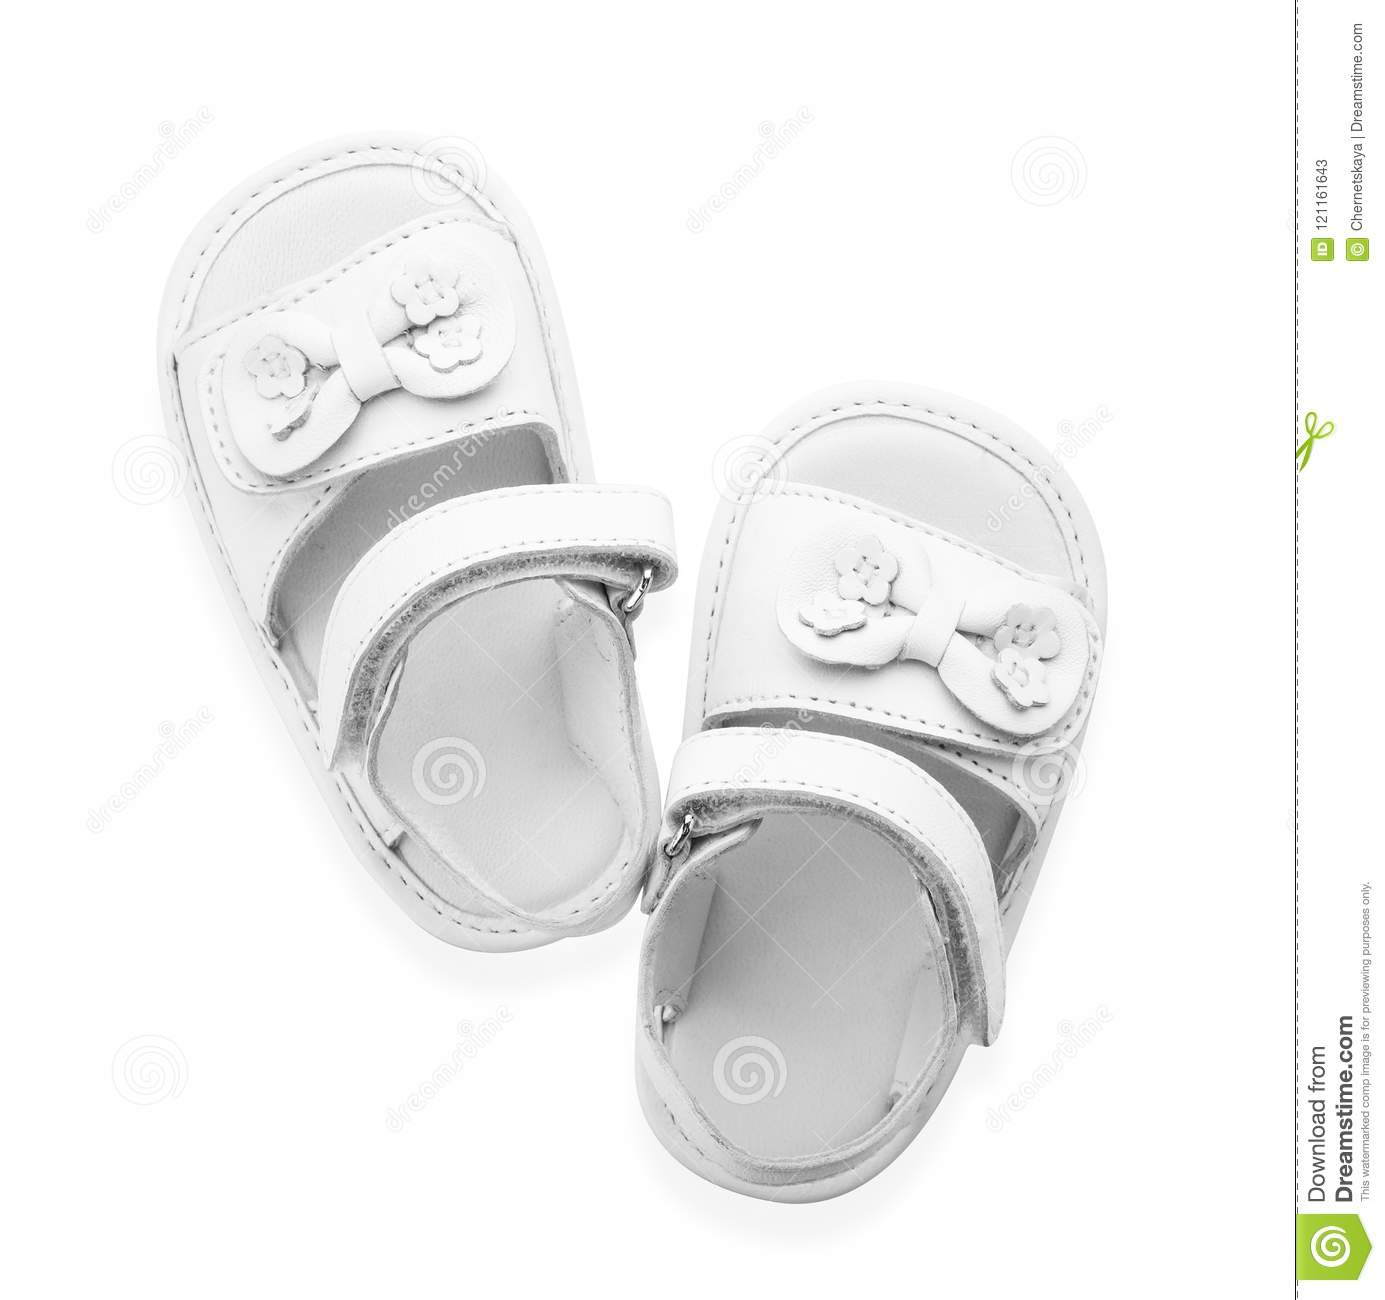 90801f7566108c Pair Of Cute Baby Sandals Decorated With Bows Stock Image - Image of ...